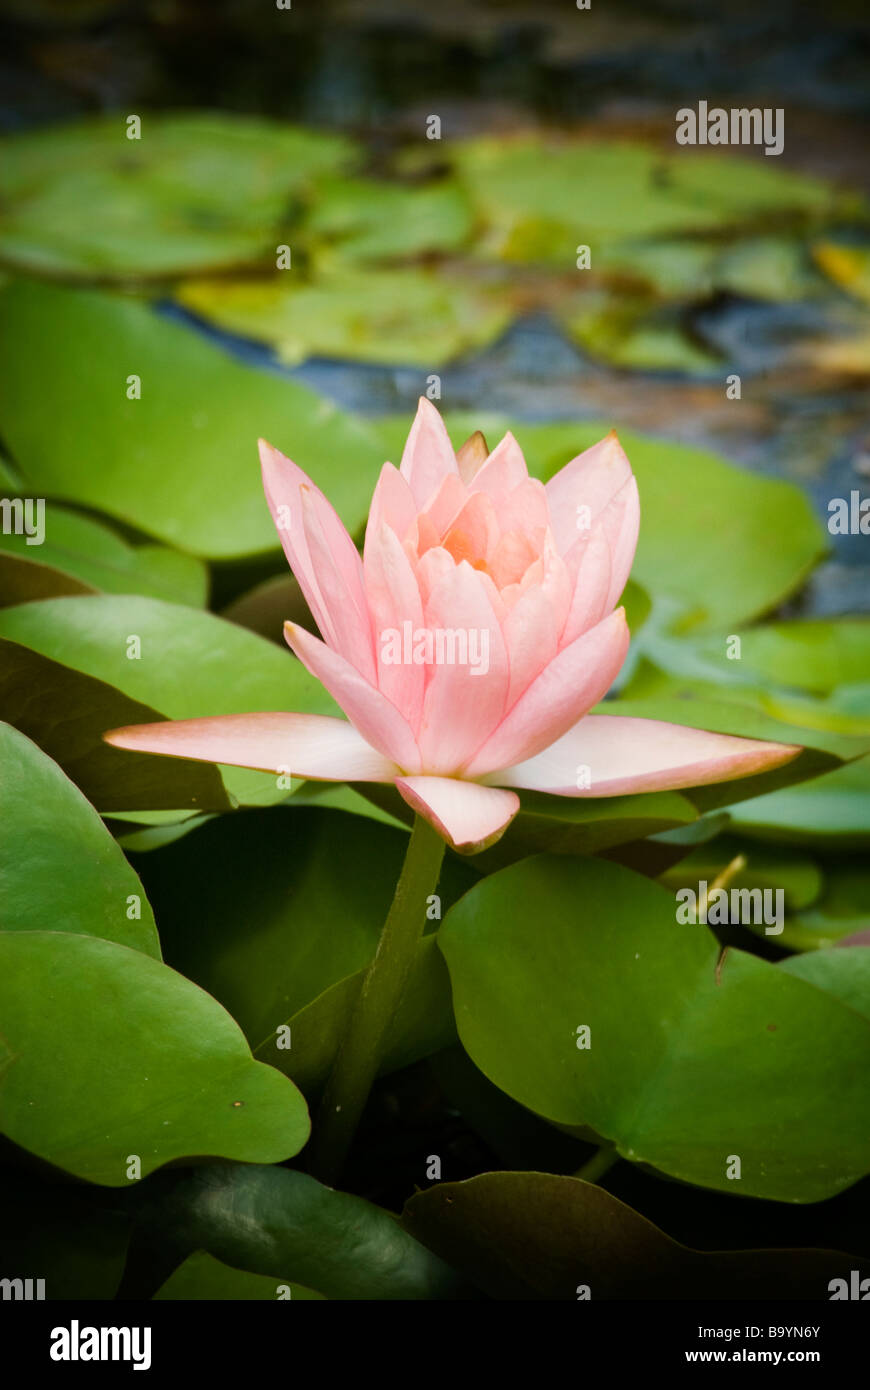 Pink Flower In Lily Pads And Pond Stock Photo 23351635 Alamy